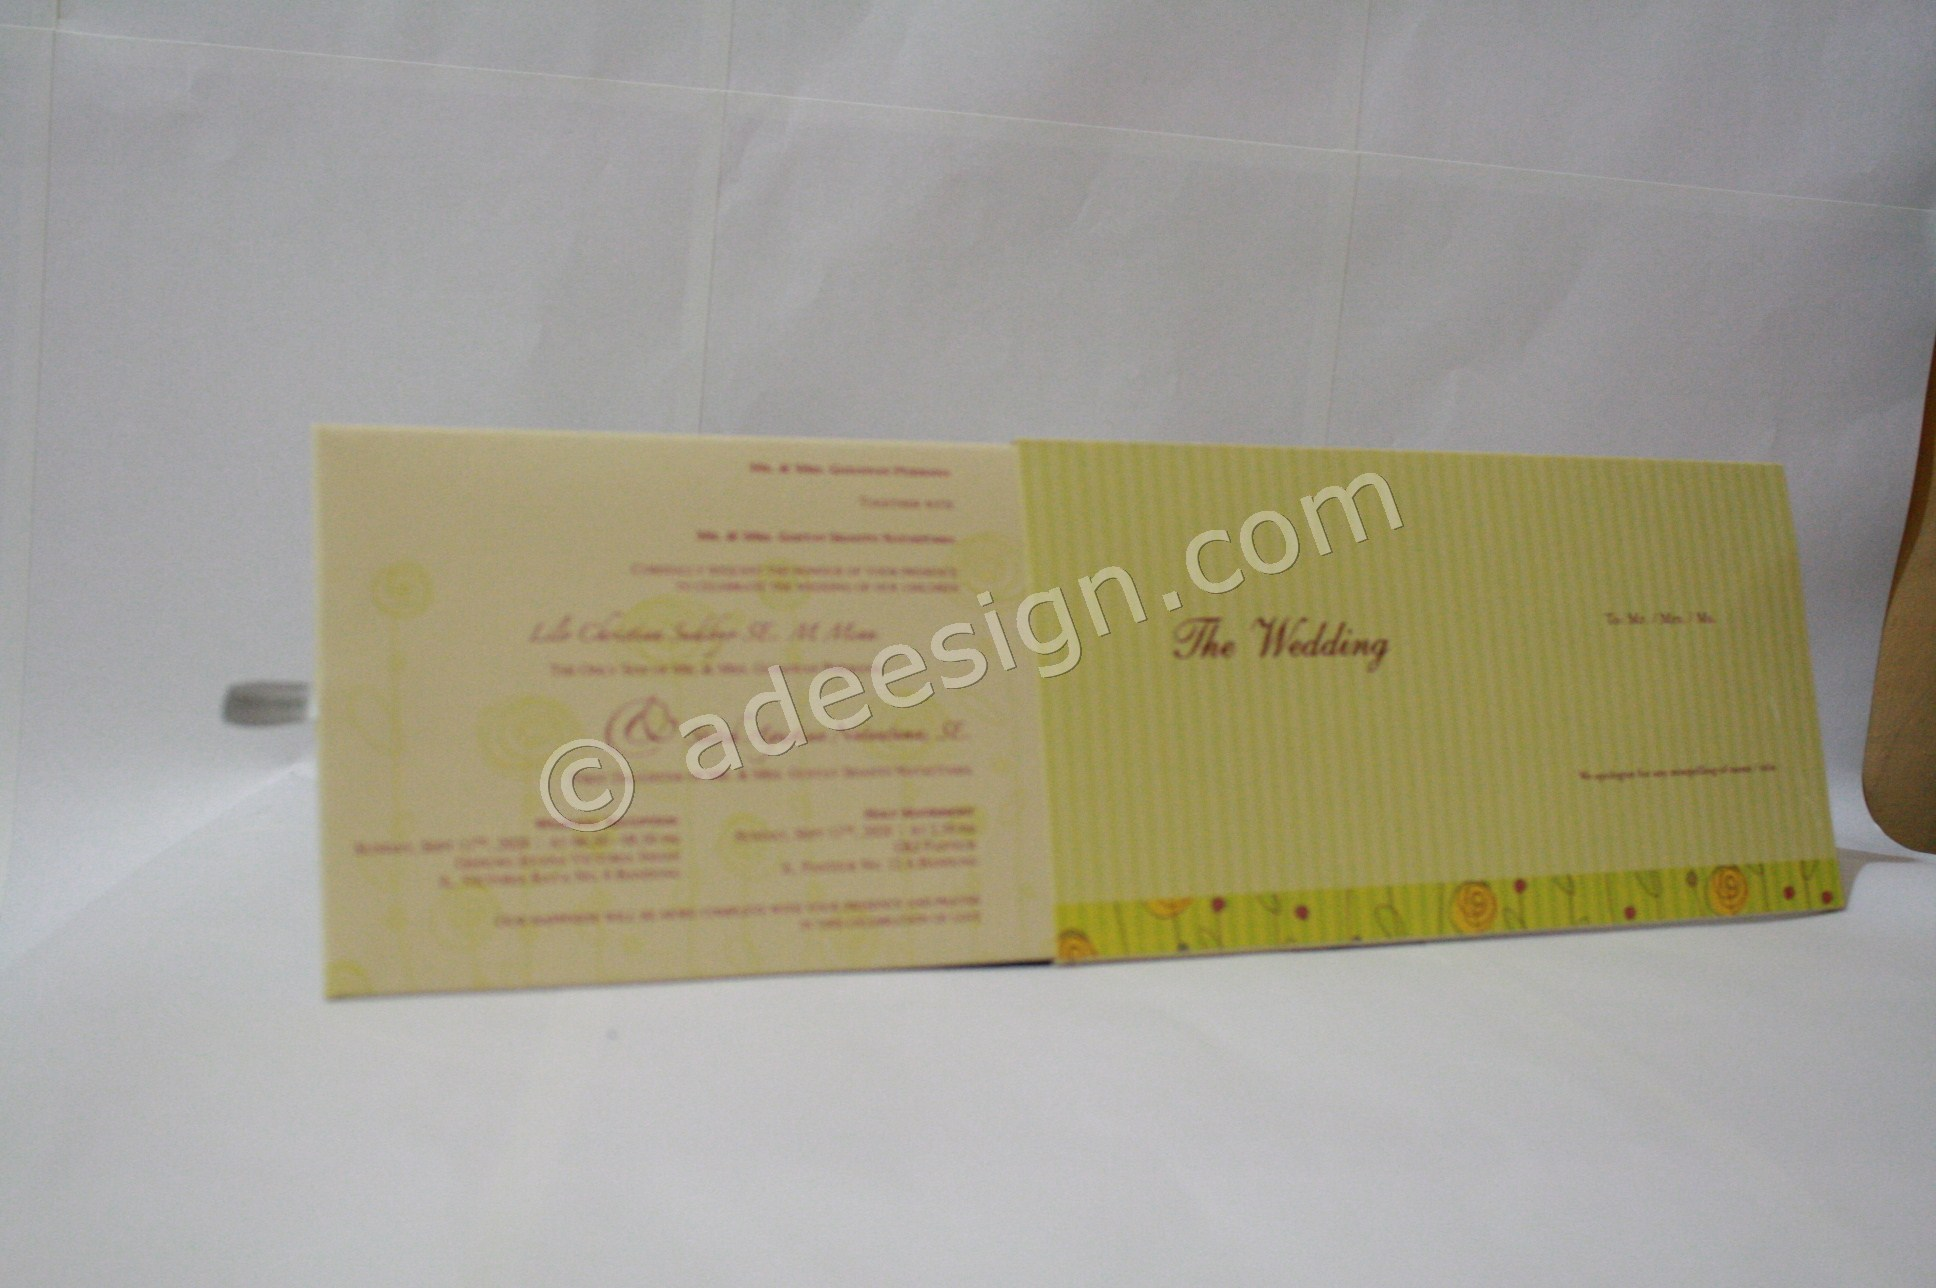 Undangan Pernikahan Hardcover ED68 4 - Desain Wedding Invitations Unik dan Simple